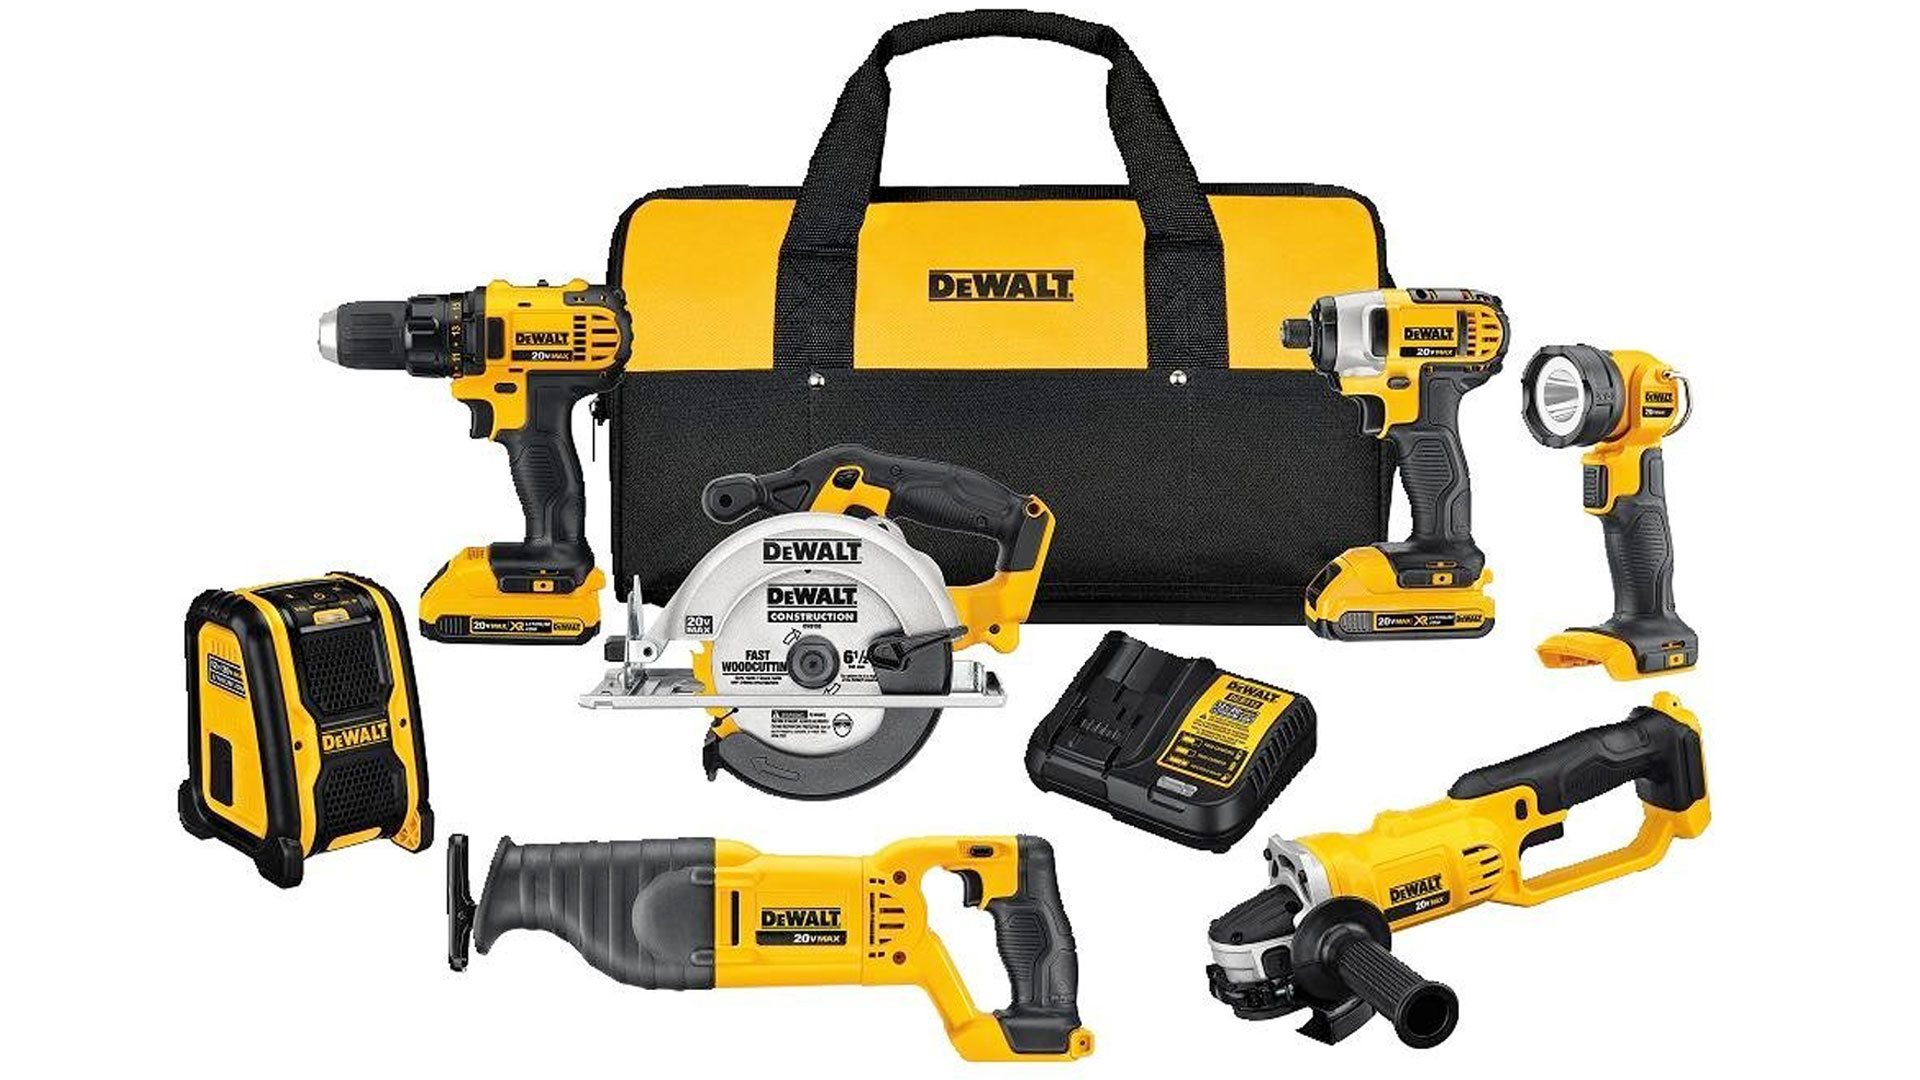 Tackle any home project w/ this DEWALT 7-tool 20V combo kit at $379 (Reg. $450)